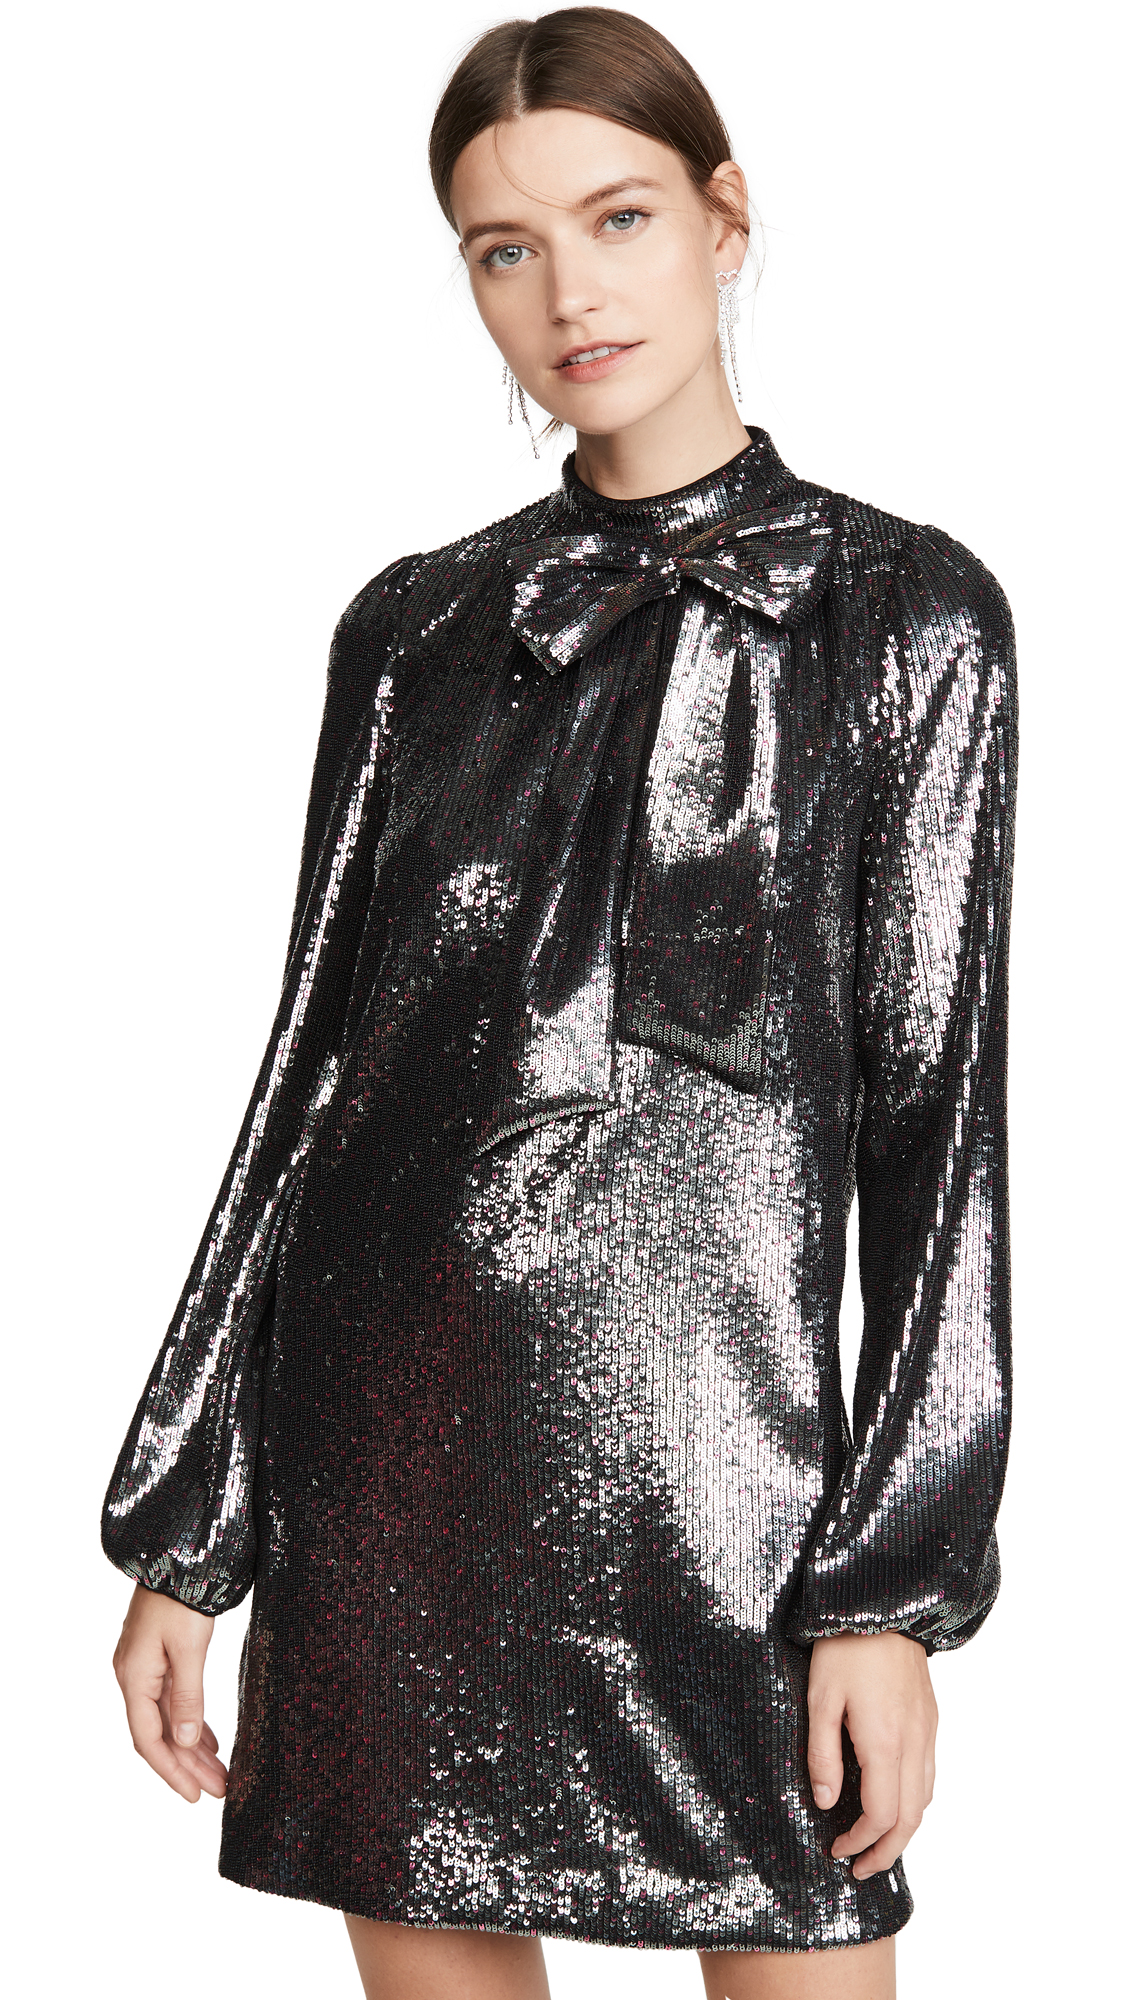 No. 21 Long Sleeve Metallic Dress – 60% Off Sale